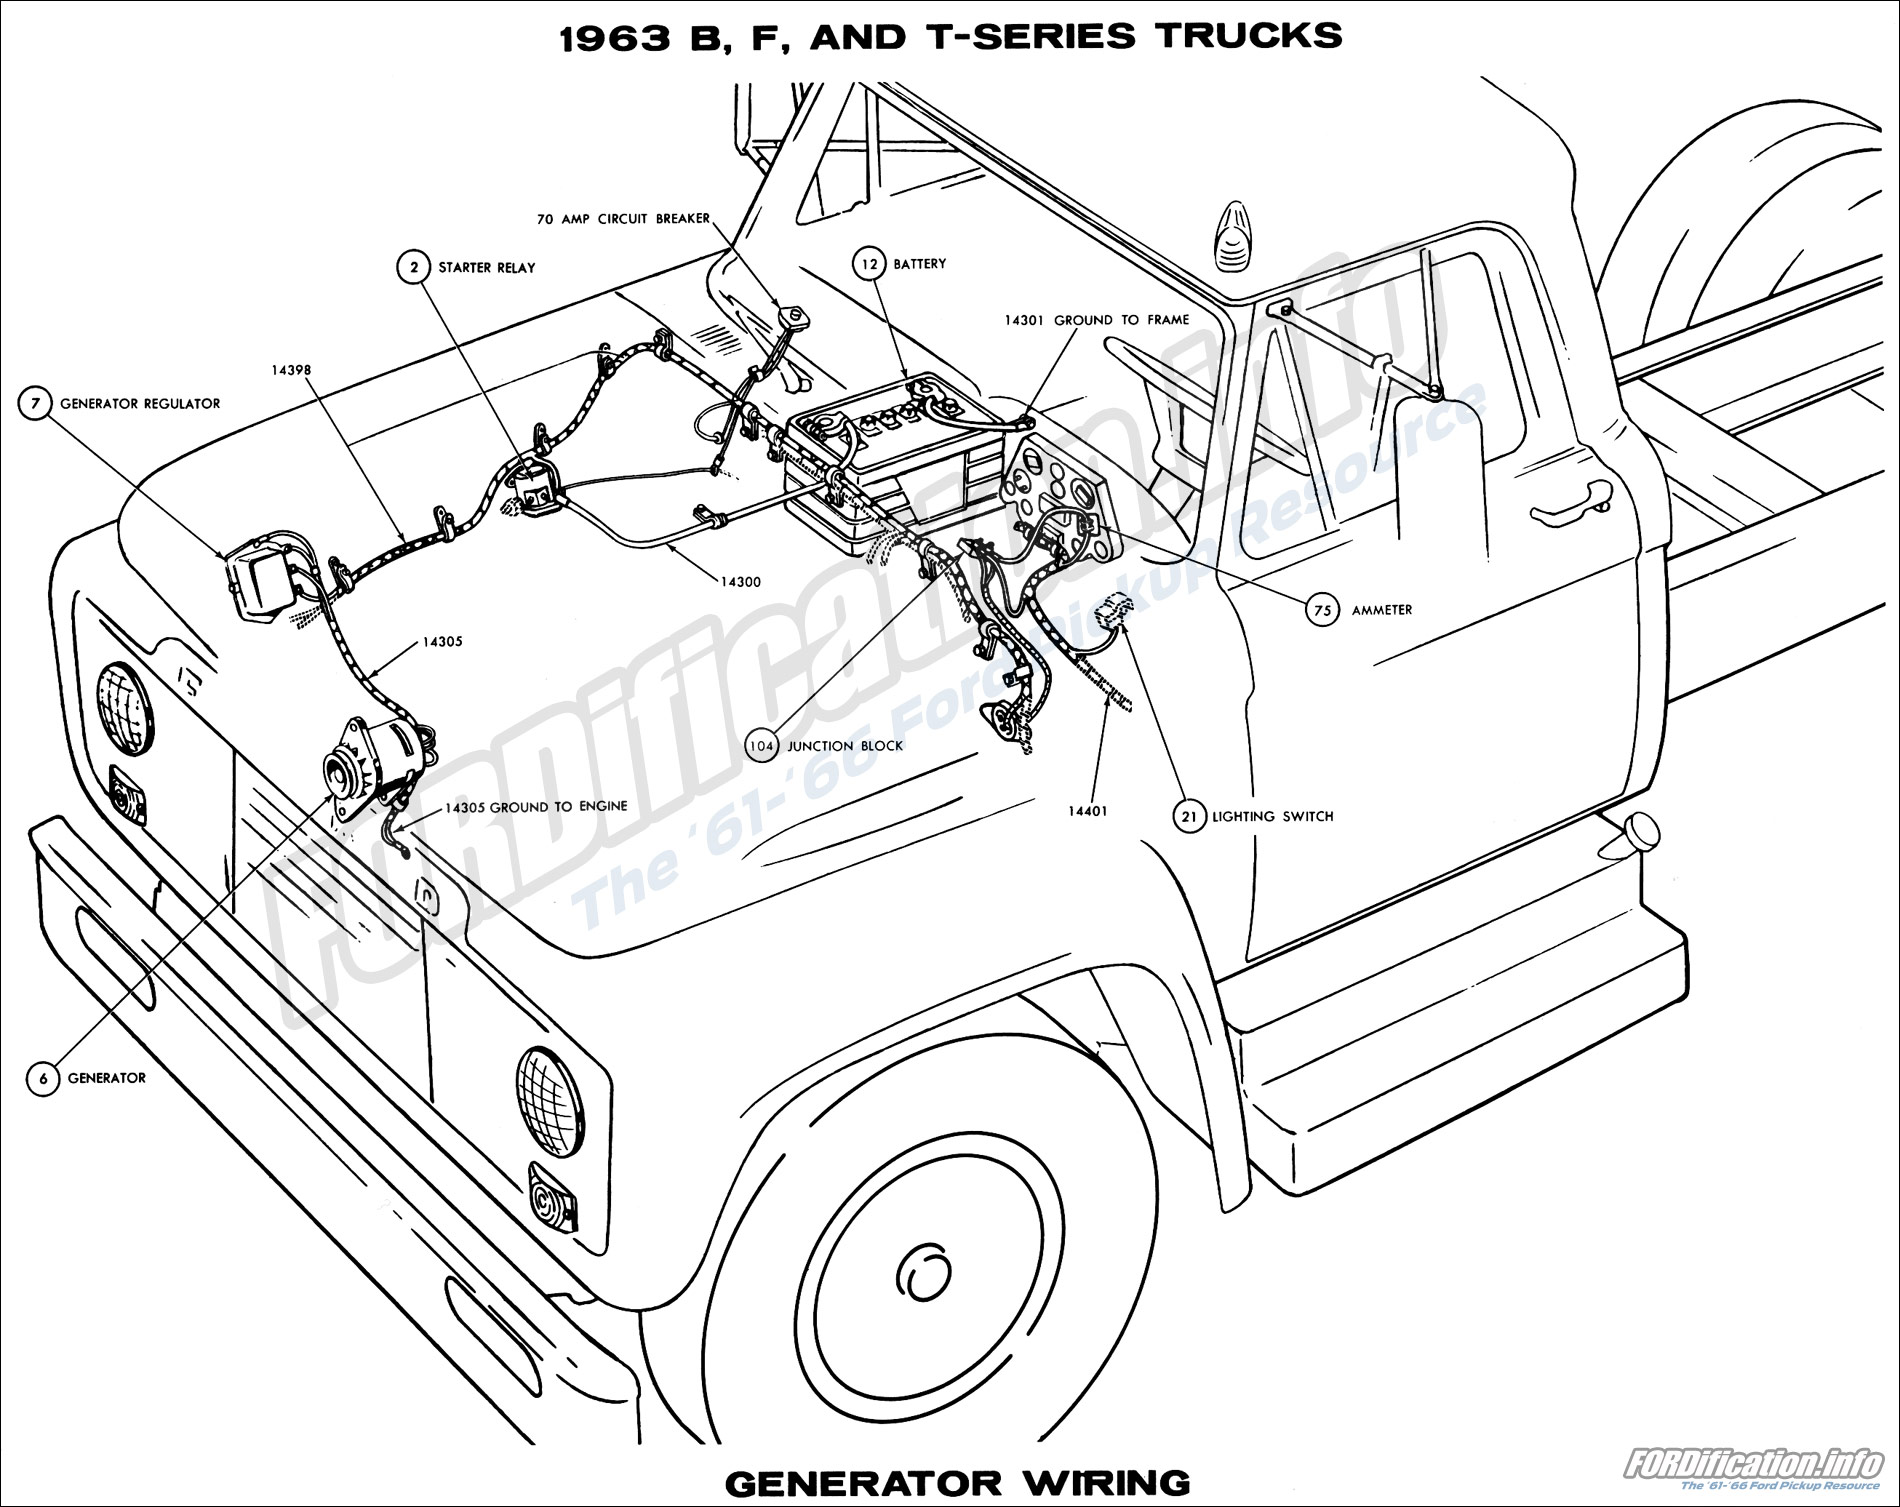 1963 ford f100 wiring 1963 ford truck wiring diagrams - fordification.info - the ...